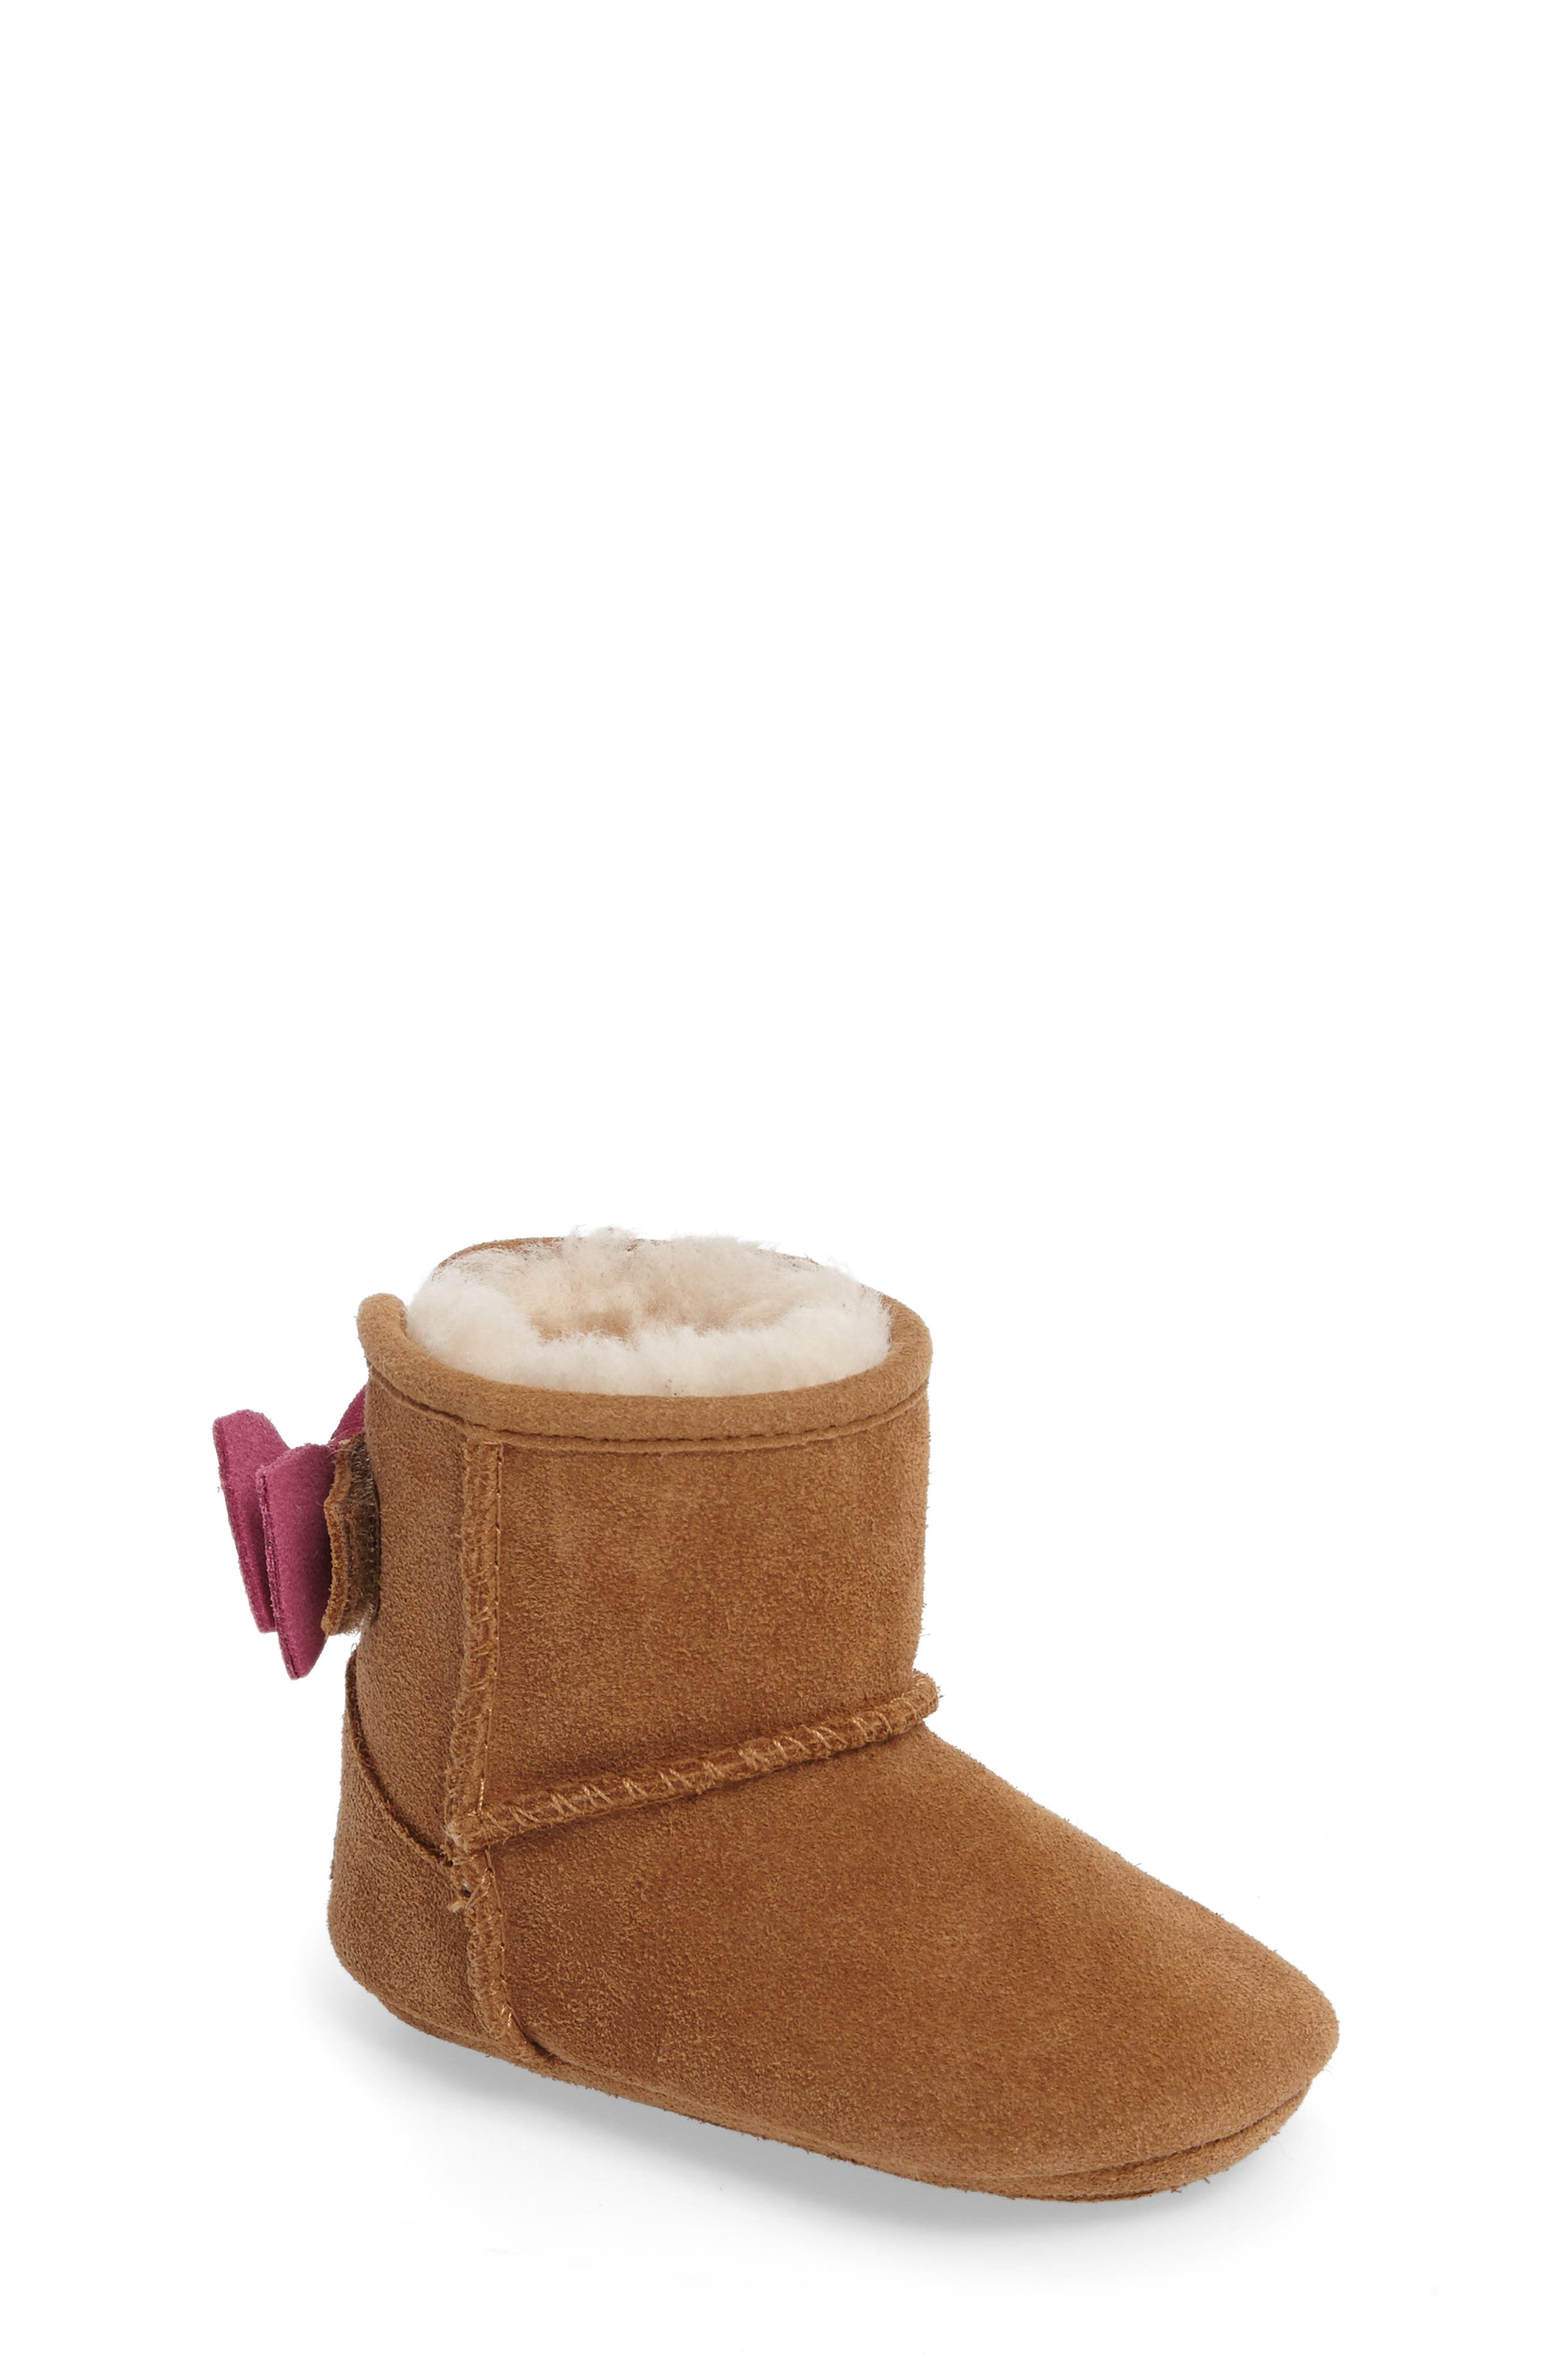 Jesse Bow II Dots Boot,                         Main,                         color, Chestnut